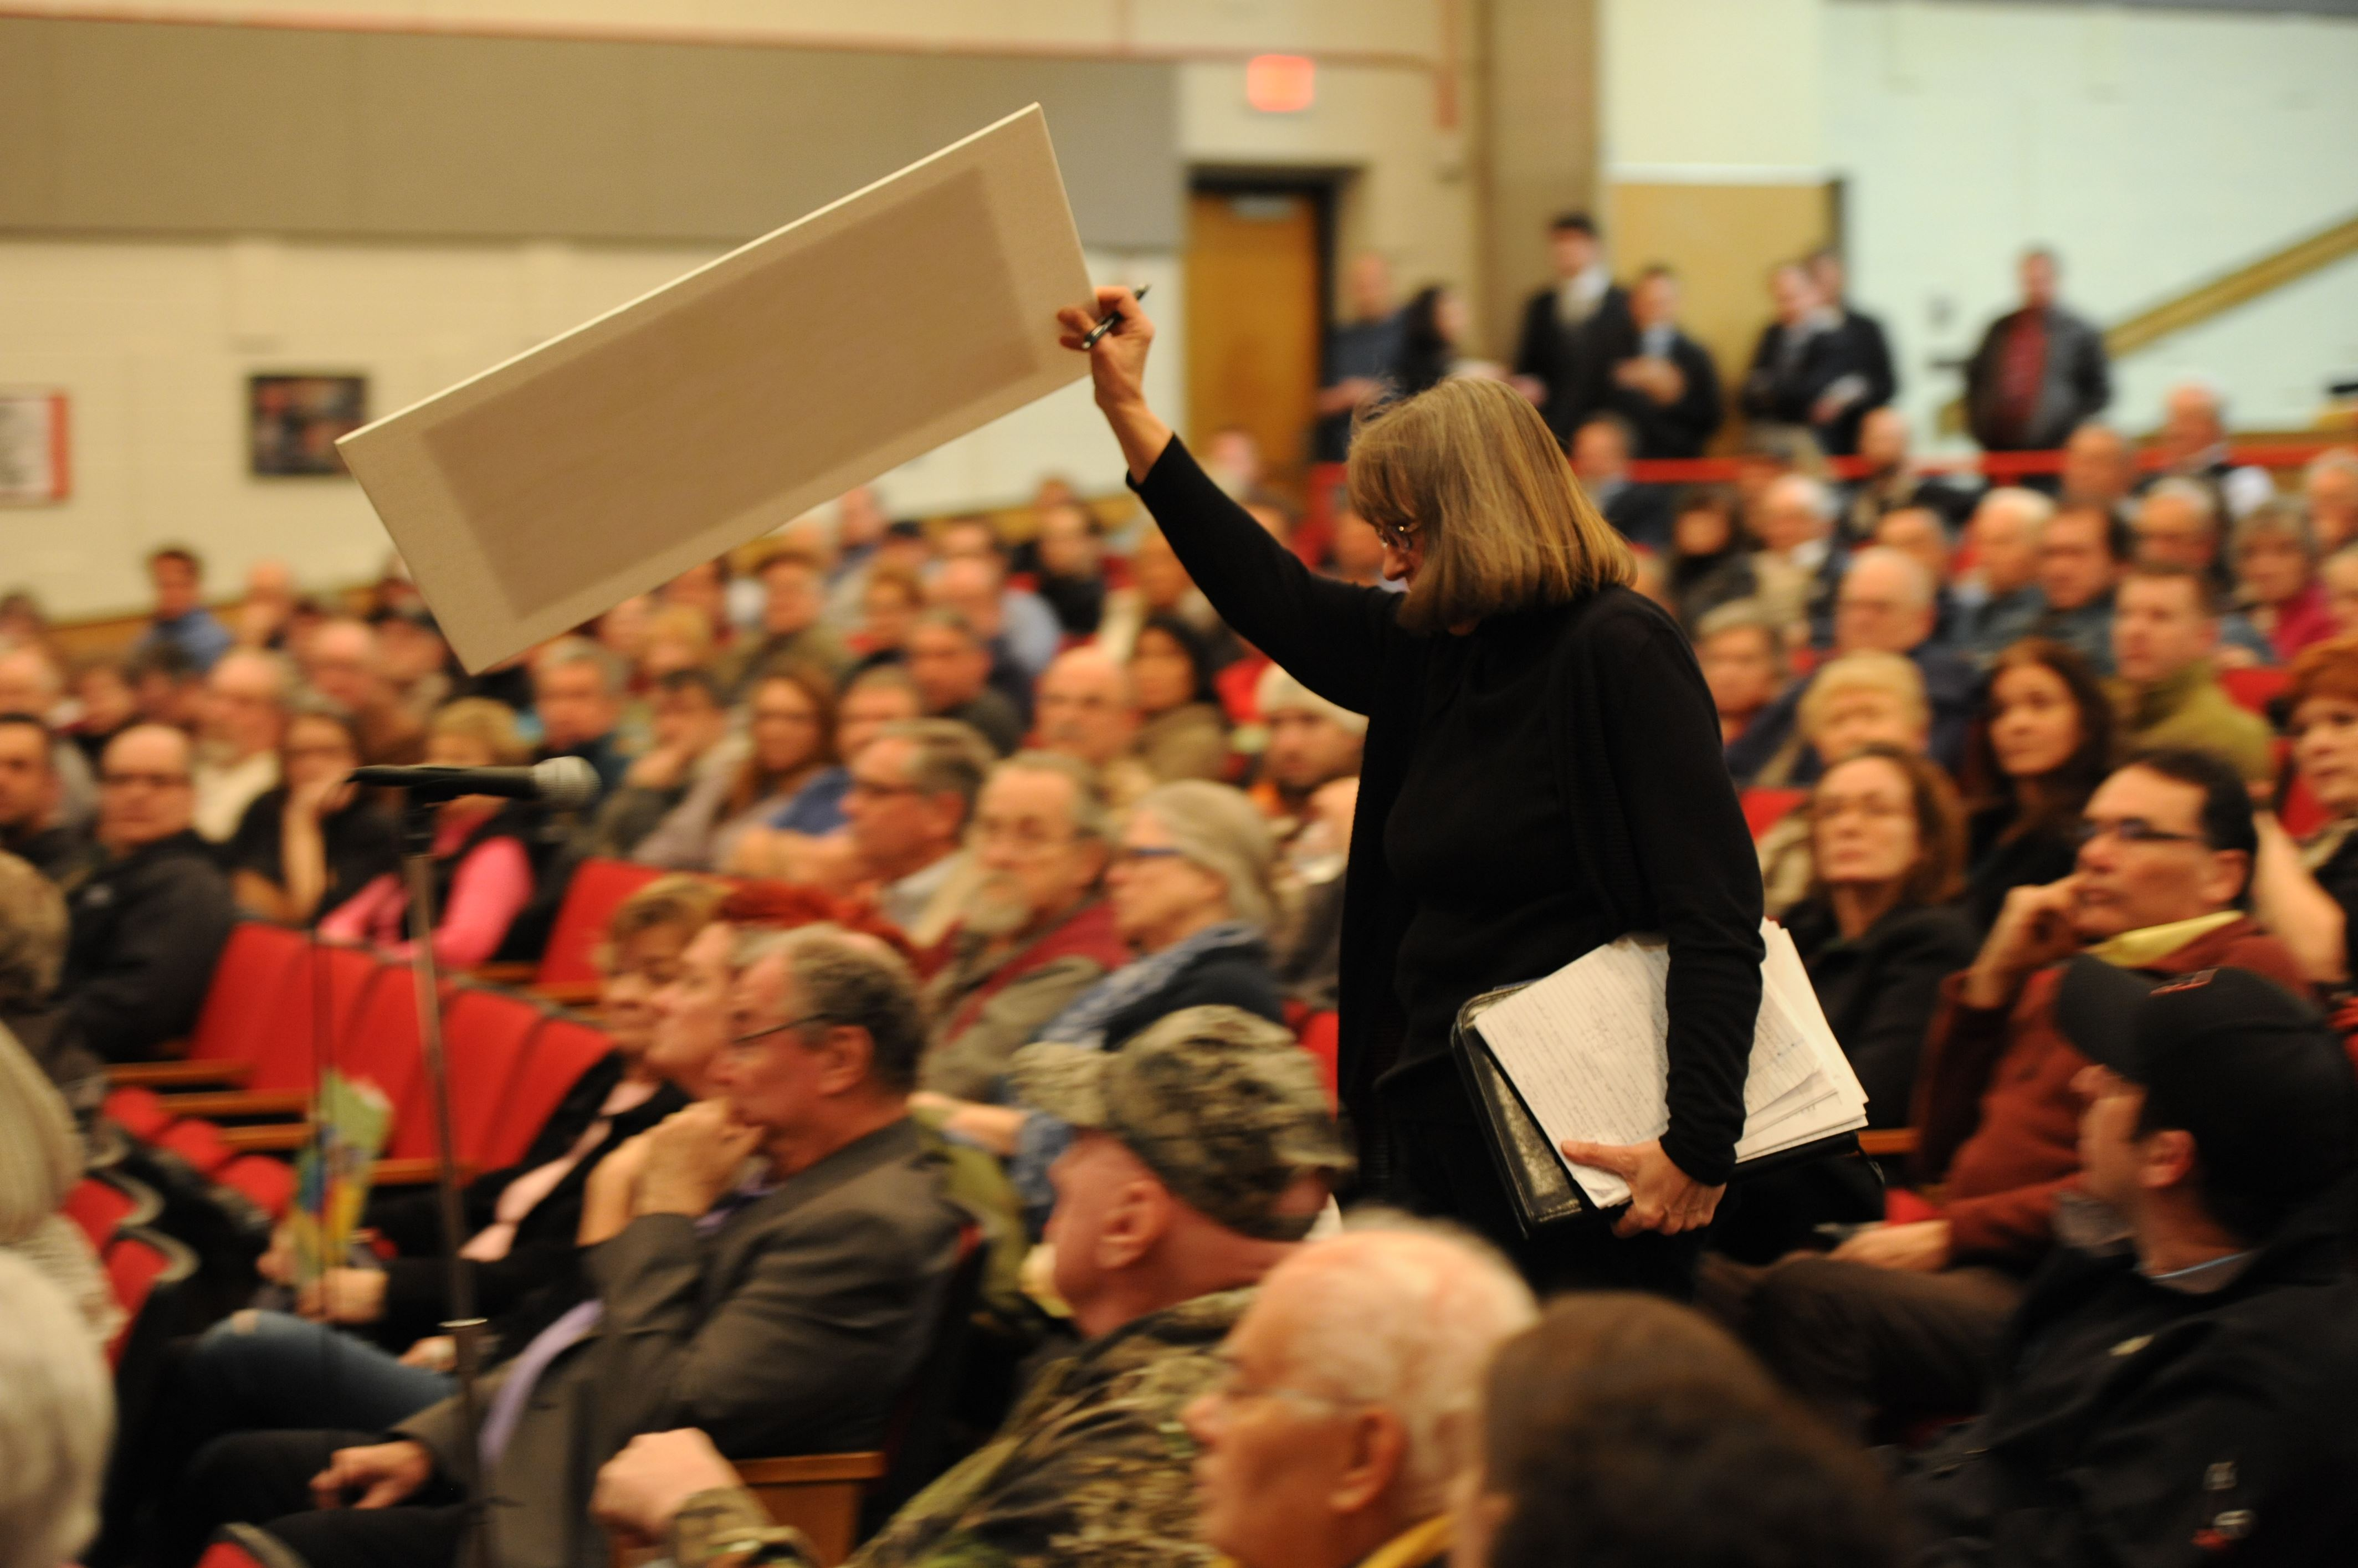 20160128rld-PowerPlant01 In January 2016, Elizabeth resident Patty Hoffman objects during a presentation by Nick Cohen, director of thermal development at Invenergy, during a community meeting at Elizabeth Forward Middle School auditorium.